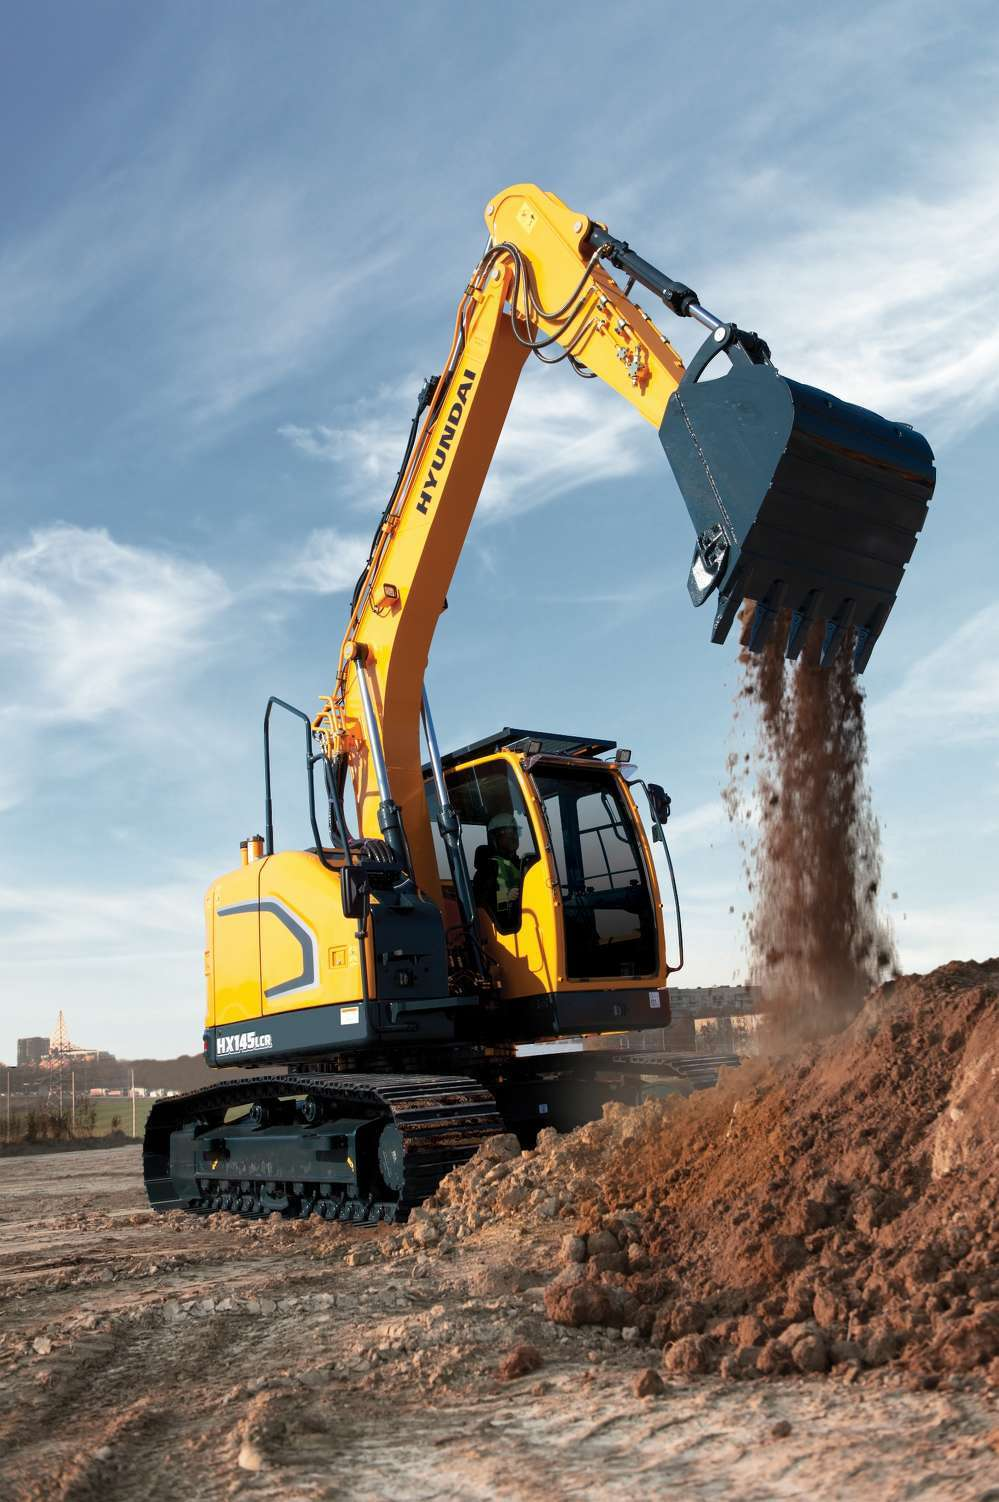 The 15.4 ton (14 t) HX145LCR compact radius excavator from Hyundai Construction Equipment Americas features new technologies that make the operating experience more comfortable, more ergonomic and more user-friendly.